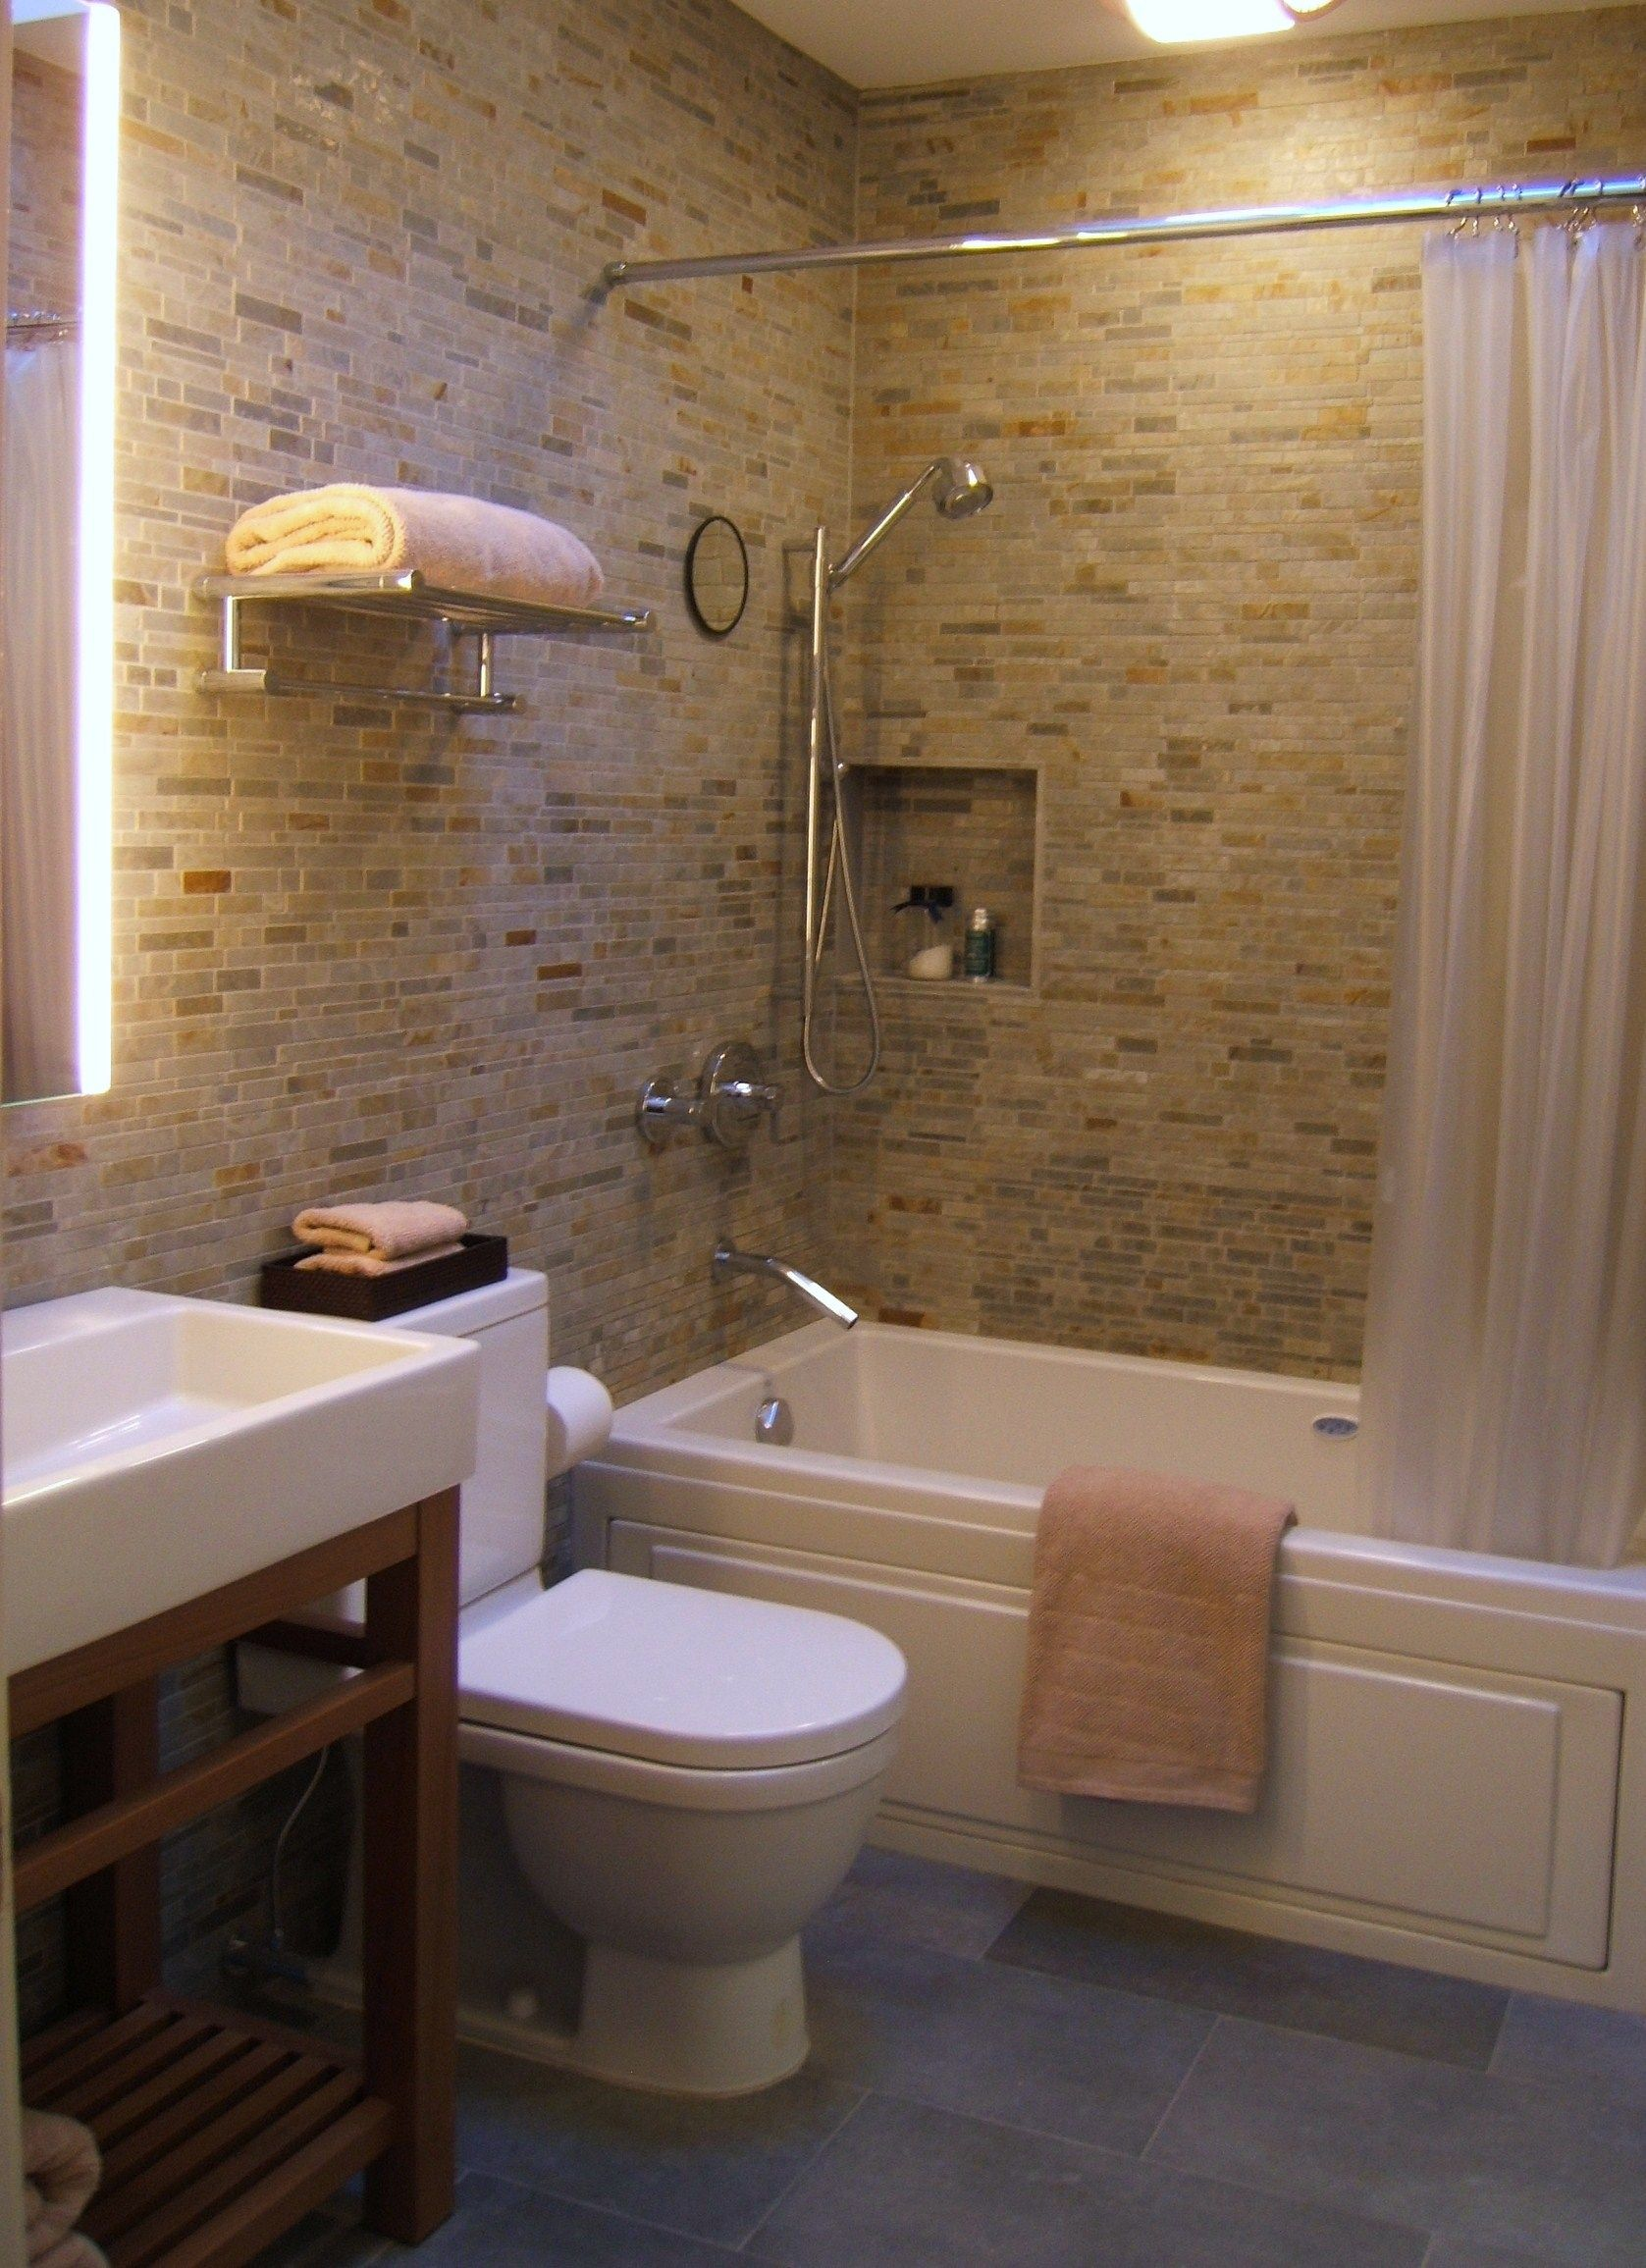 Small bathroom designs south africa small bath for Bathroom renovation ideas pictures